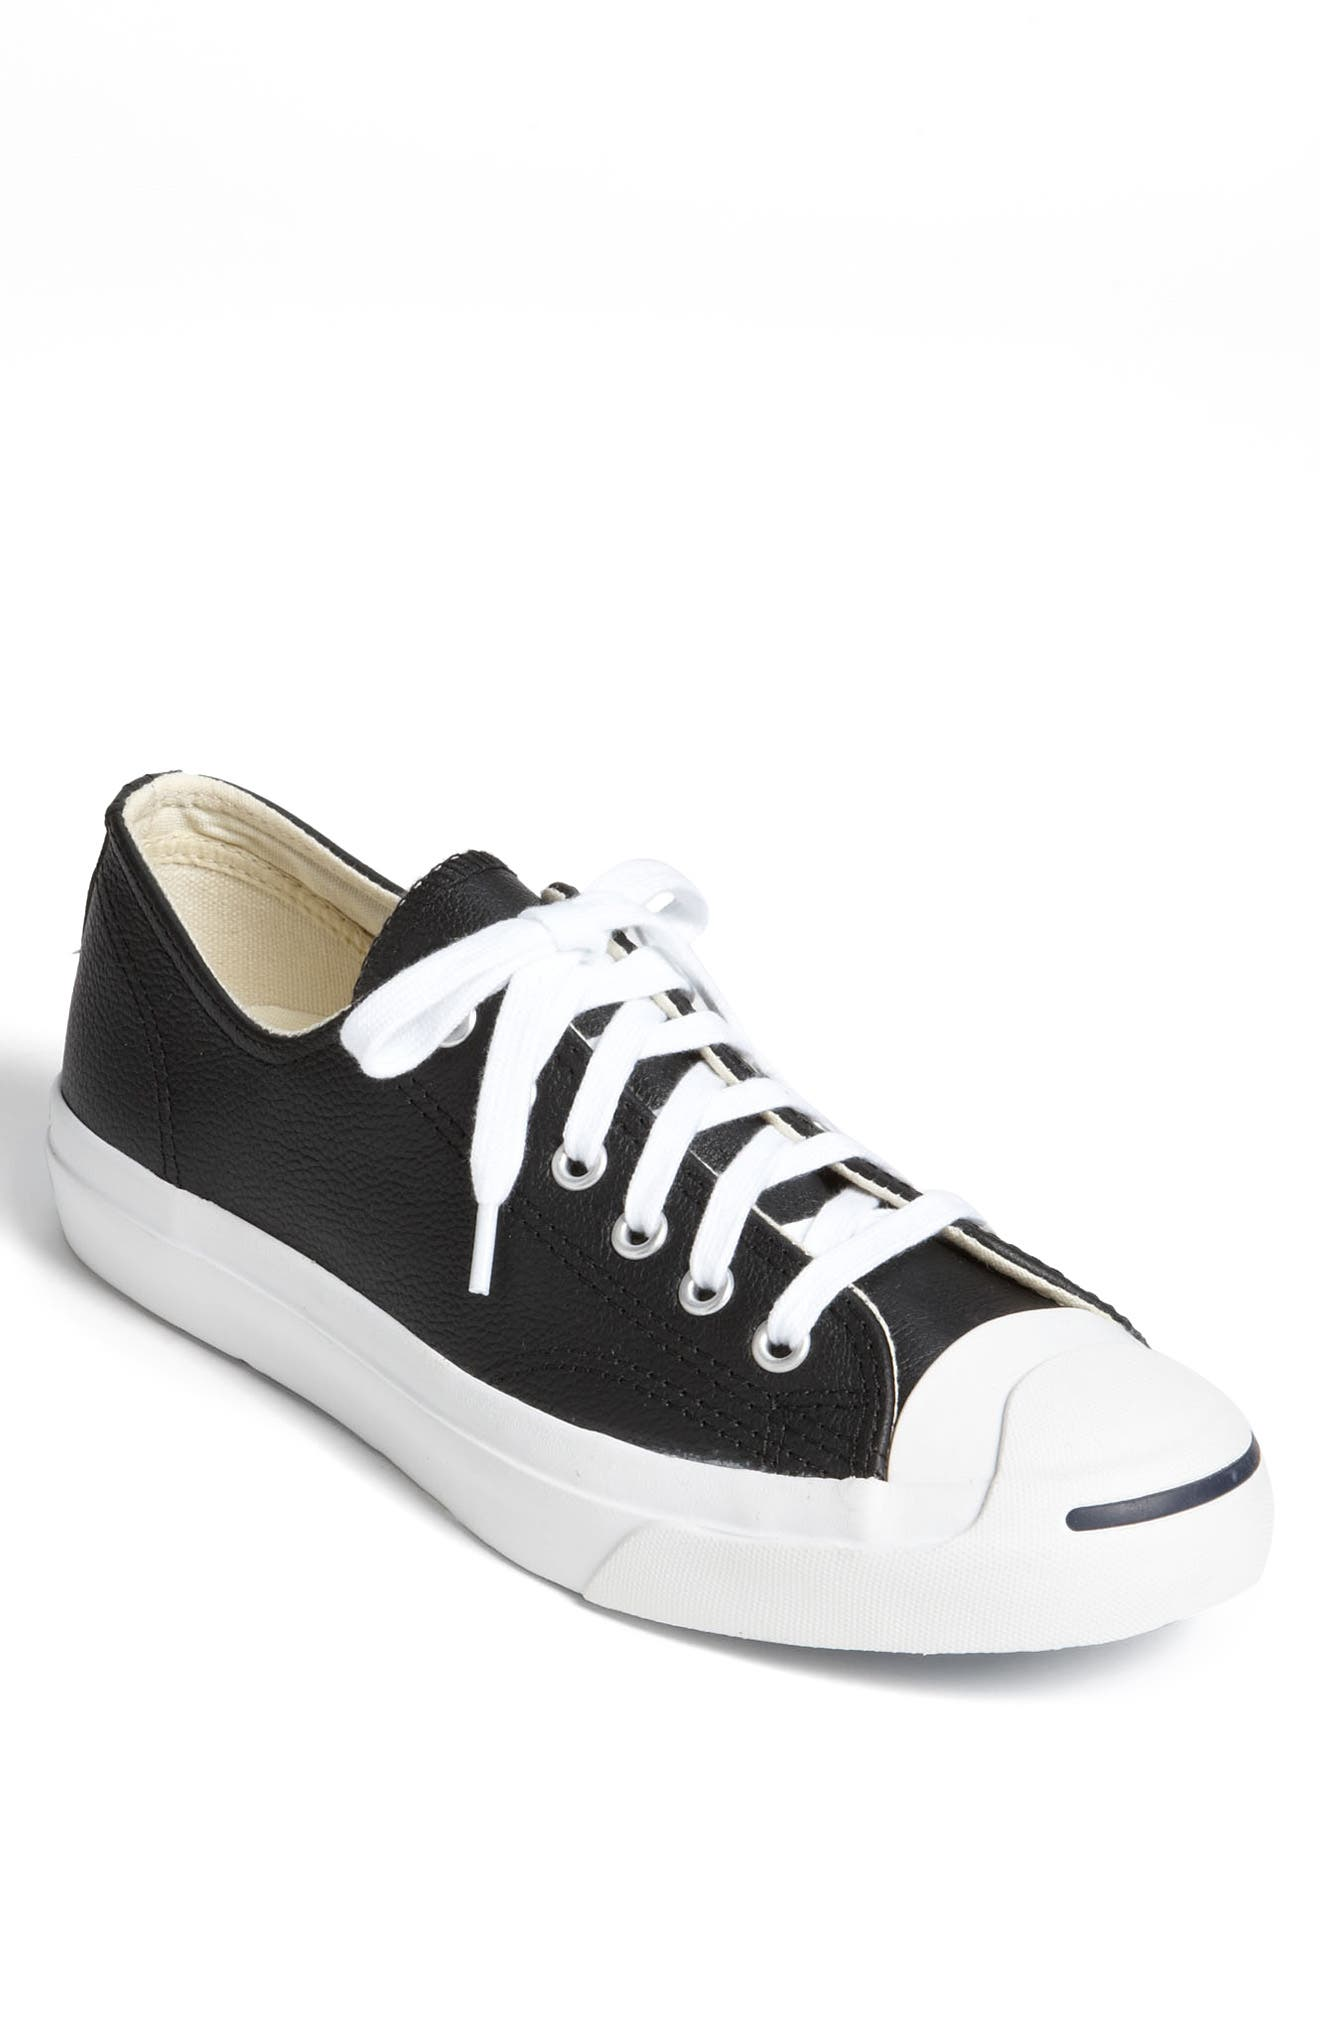 'Jack Purcell' Leather Sneaker,                             Main thumbnail 1, color,                             BLACK/ WHITE